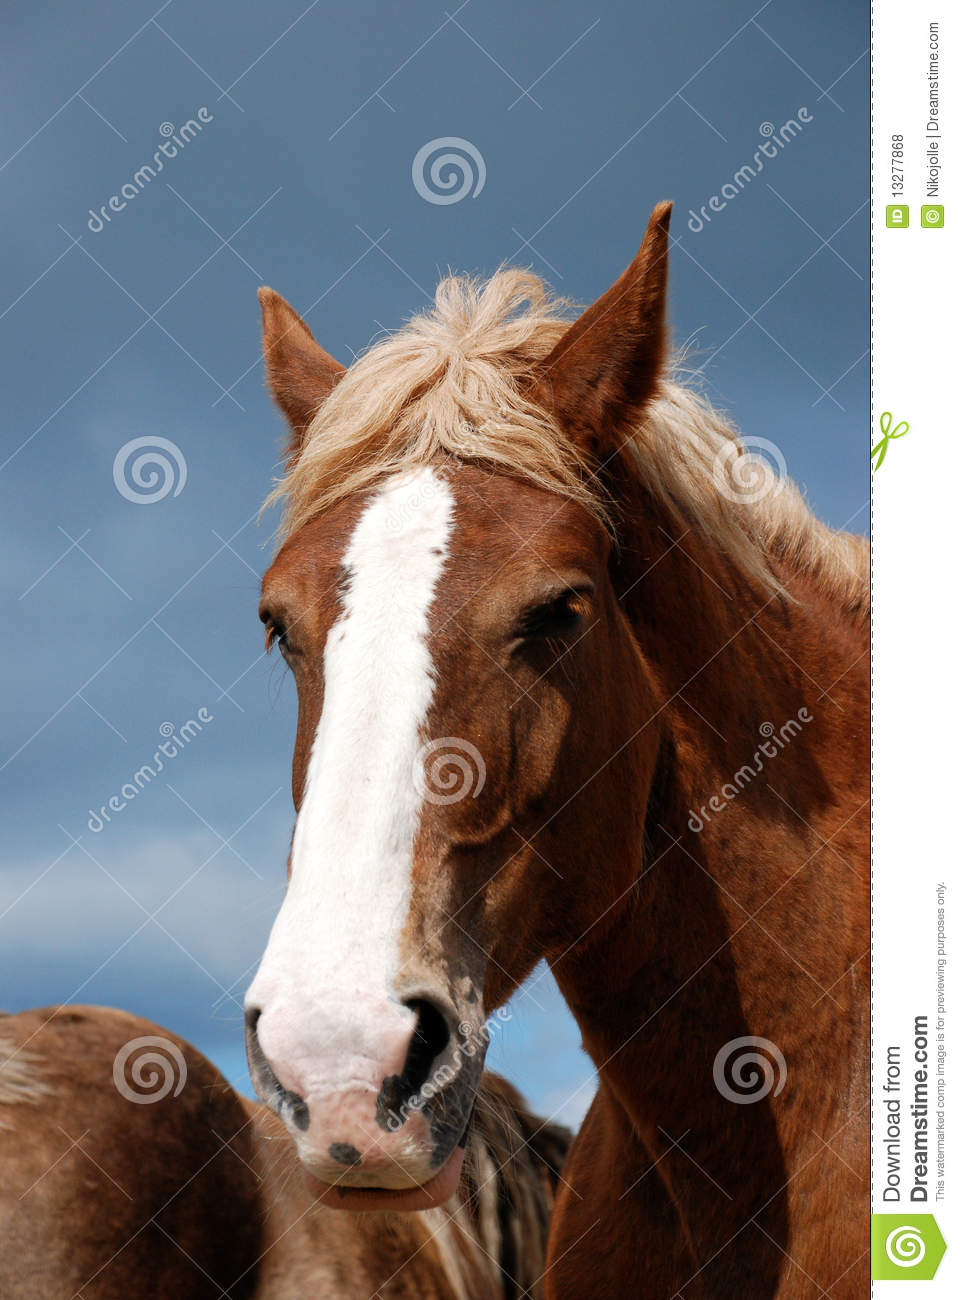 4 329 Draft Horse Photos Free Royalty Free Stock Photos From Dreamstime